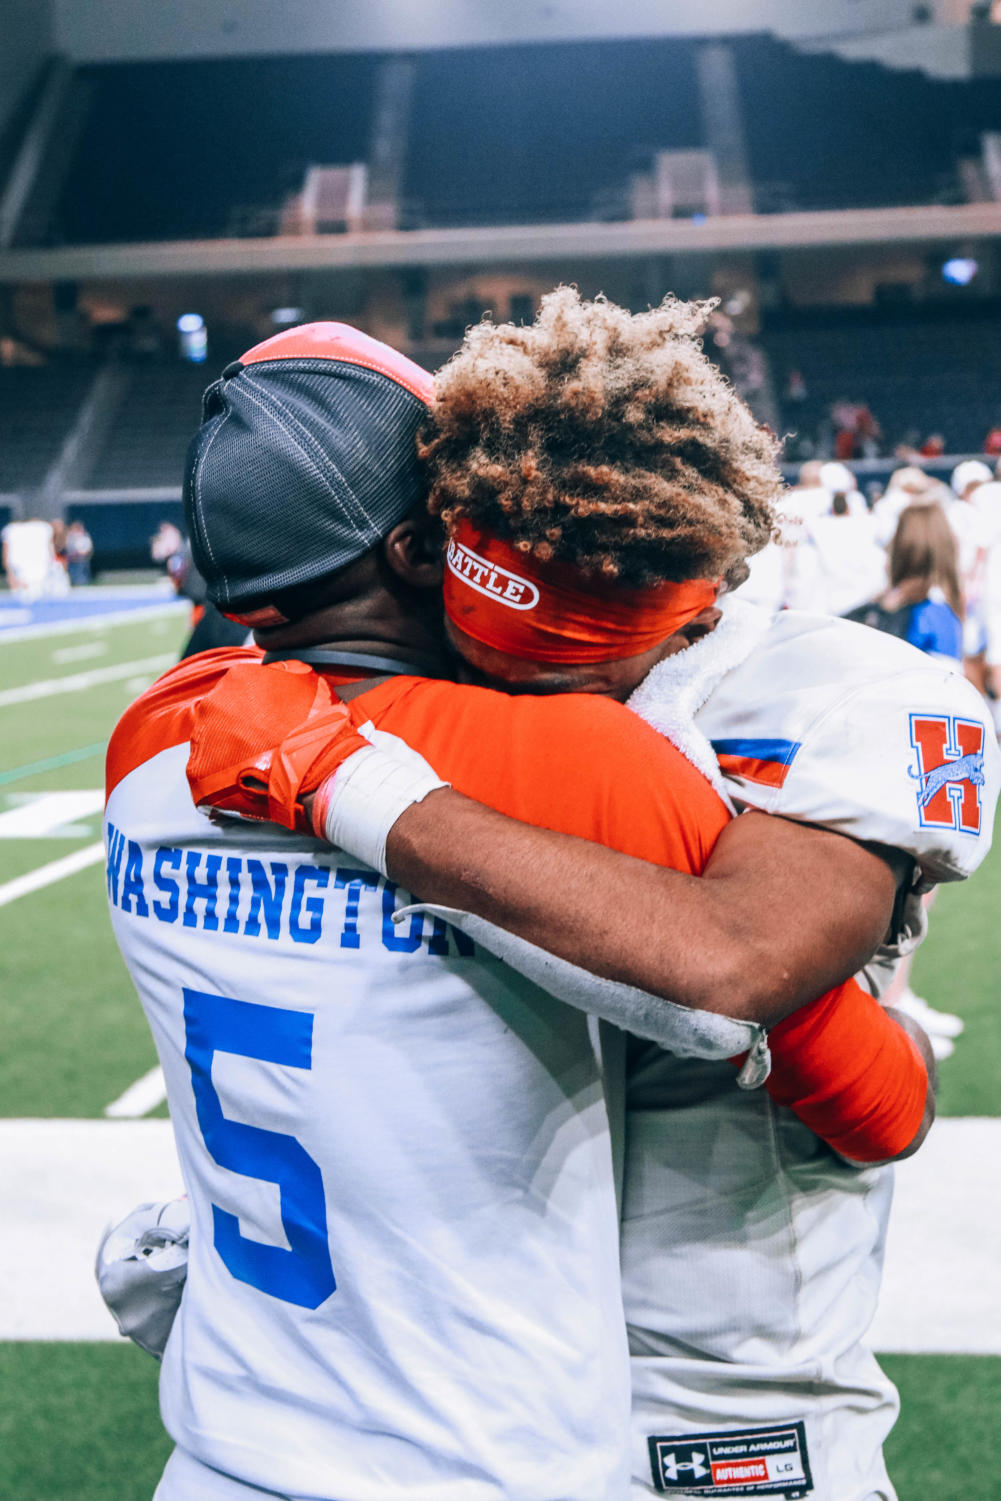 Dre+Washington+%2812%29+hugs+his+dad+after+the+devastating+loss+against+Carthage.+%E2%80%9CI+left+everything+I+had+on+the+field%2C%E2%80%9D+Washington+said.+Washington+didn%27t+feel+the+need+to+cry+because+he+knew+that+he+tried+his+best.+%0A